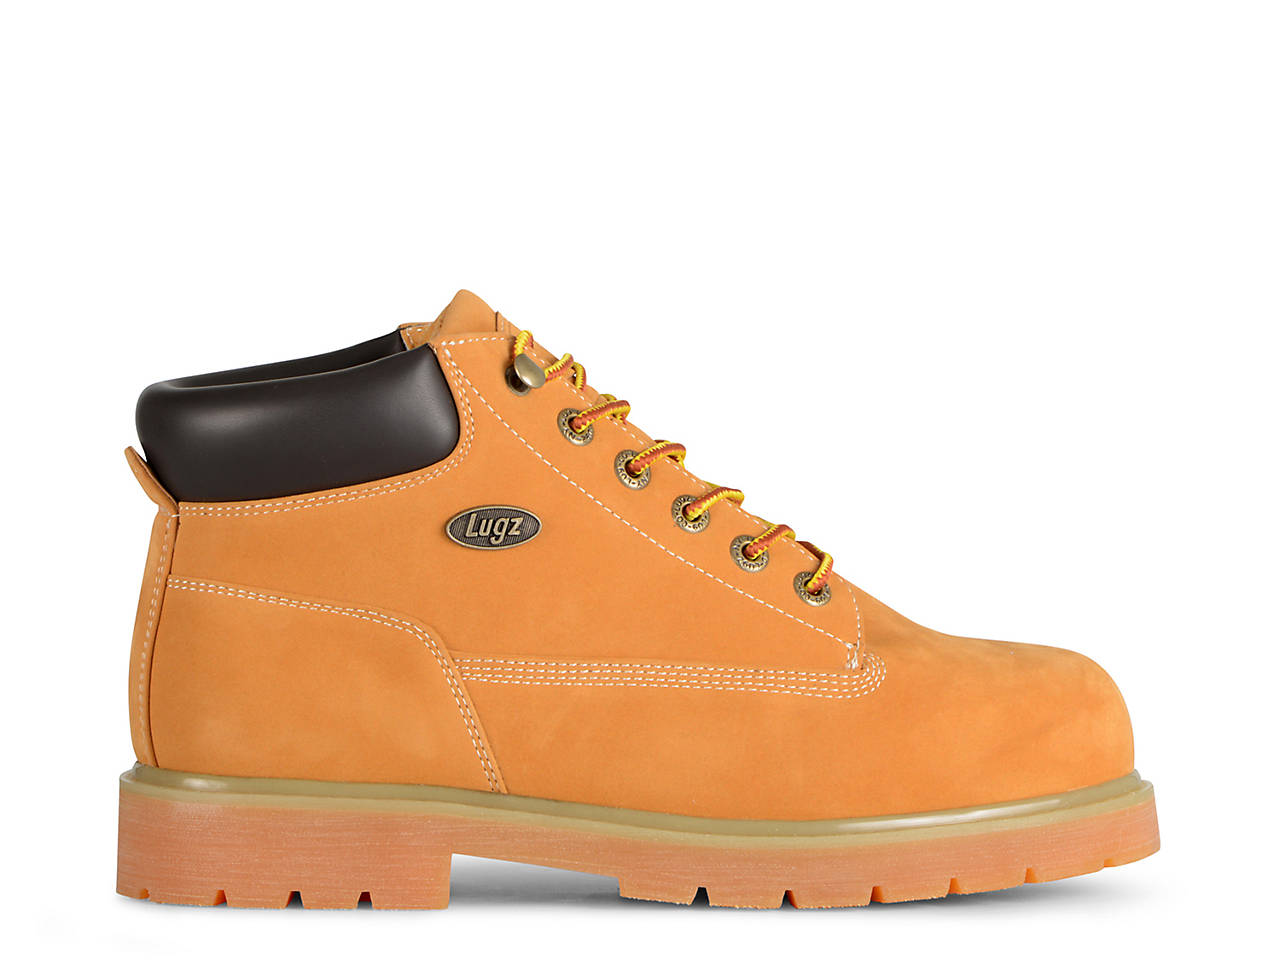 afb2b8cac0e Drifter Mid Steel Toe Work Boot